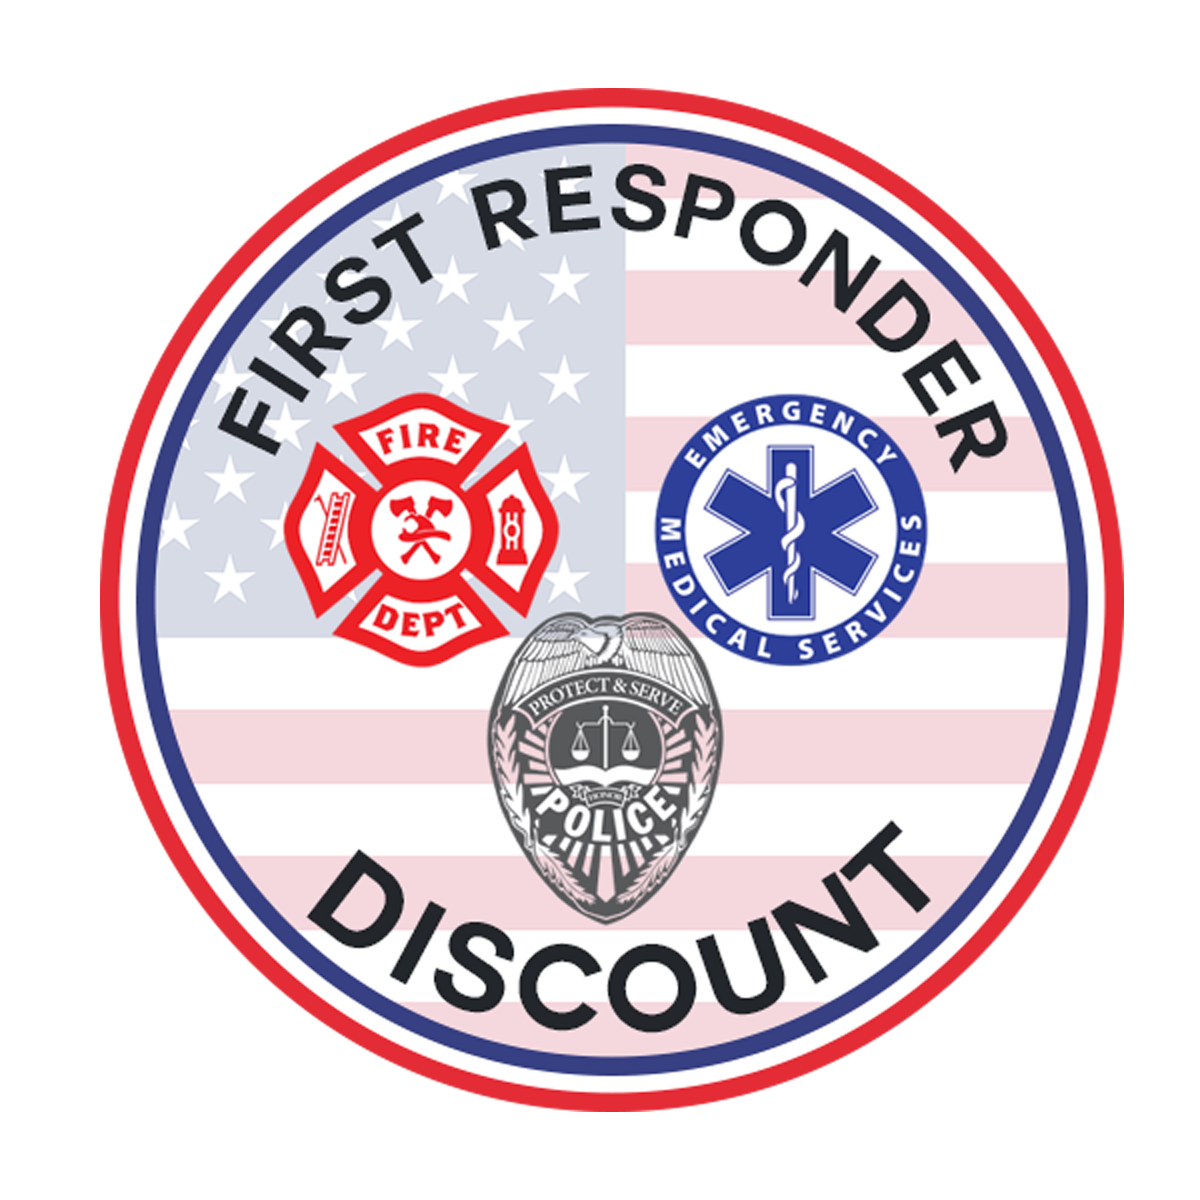 We Honor First Responders Discounts